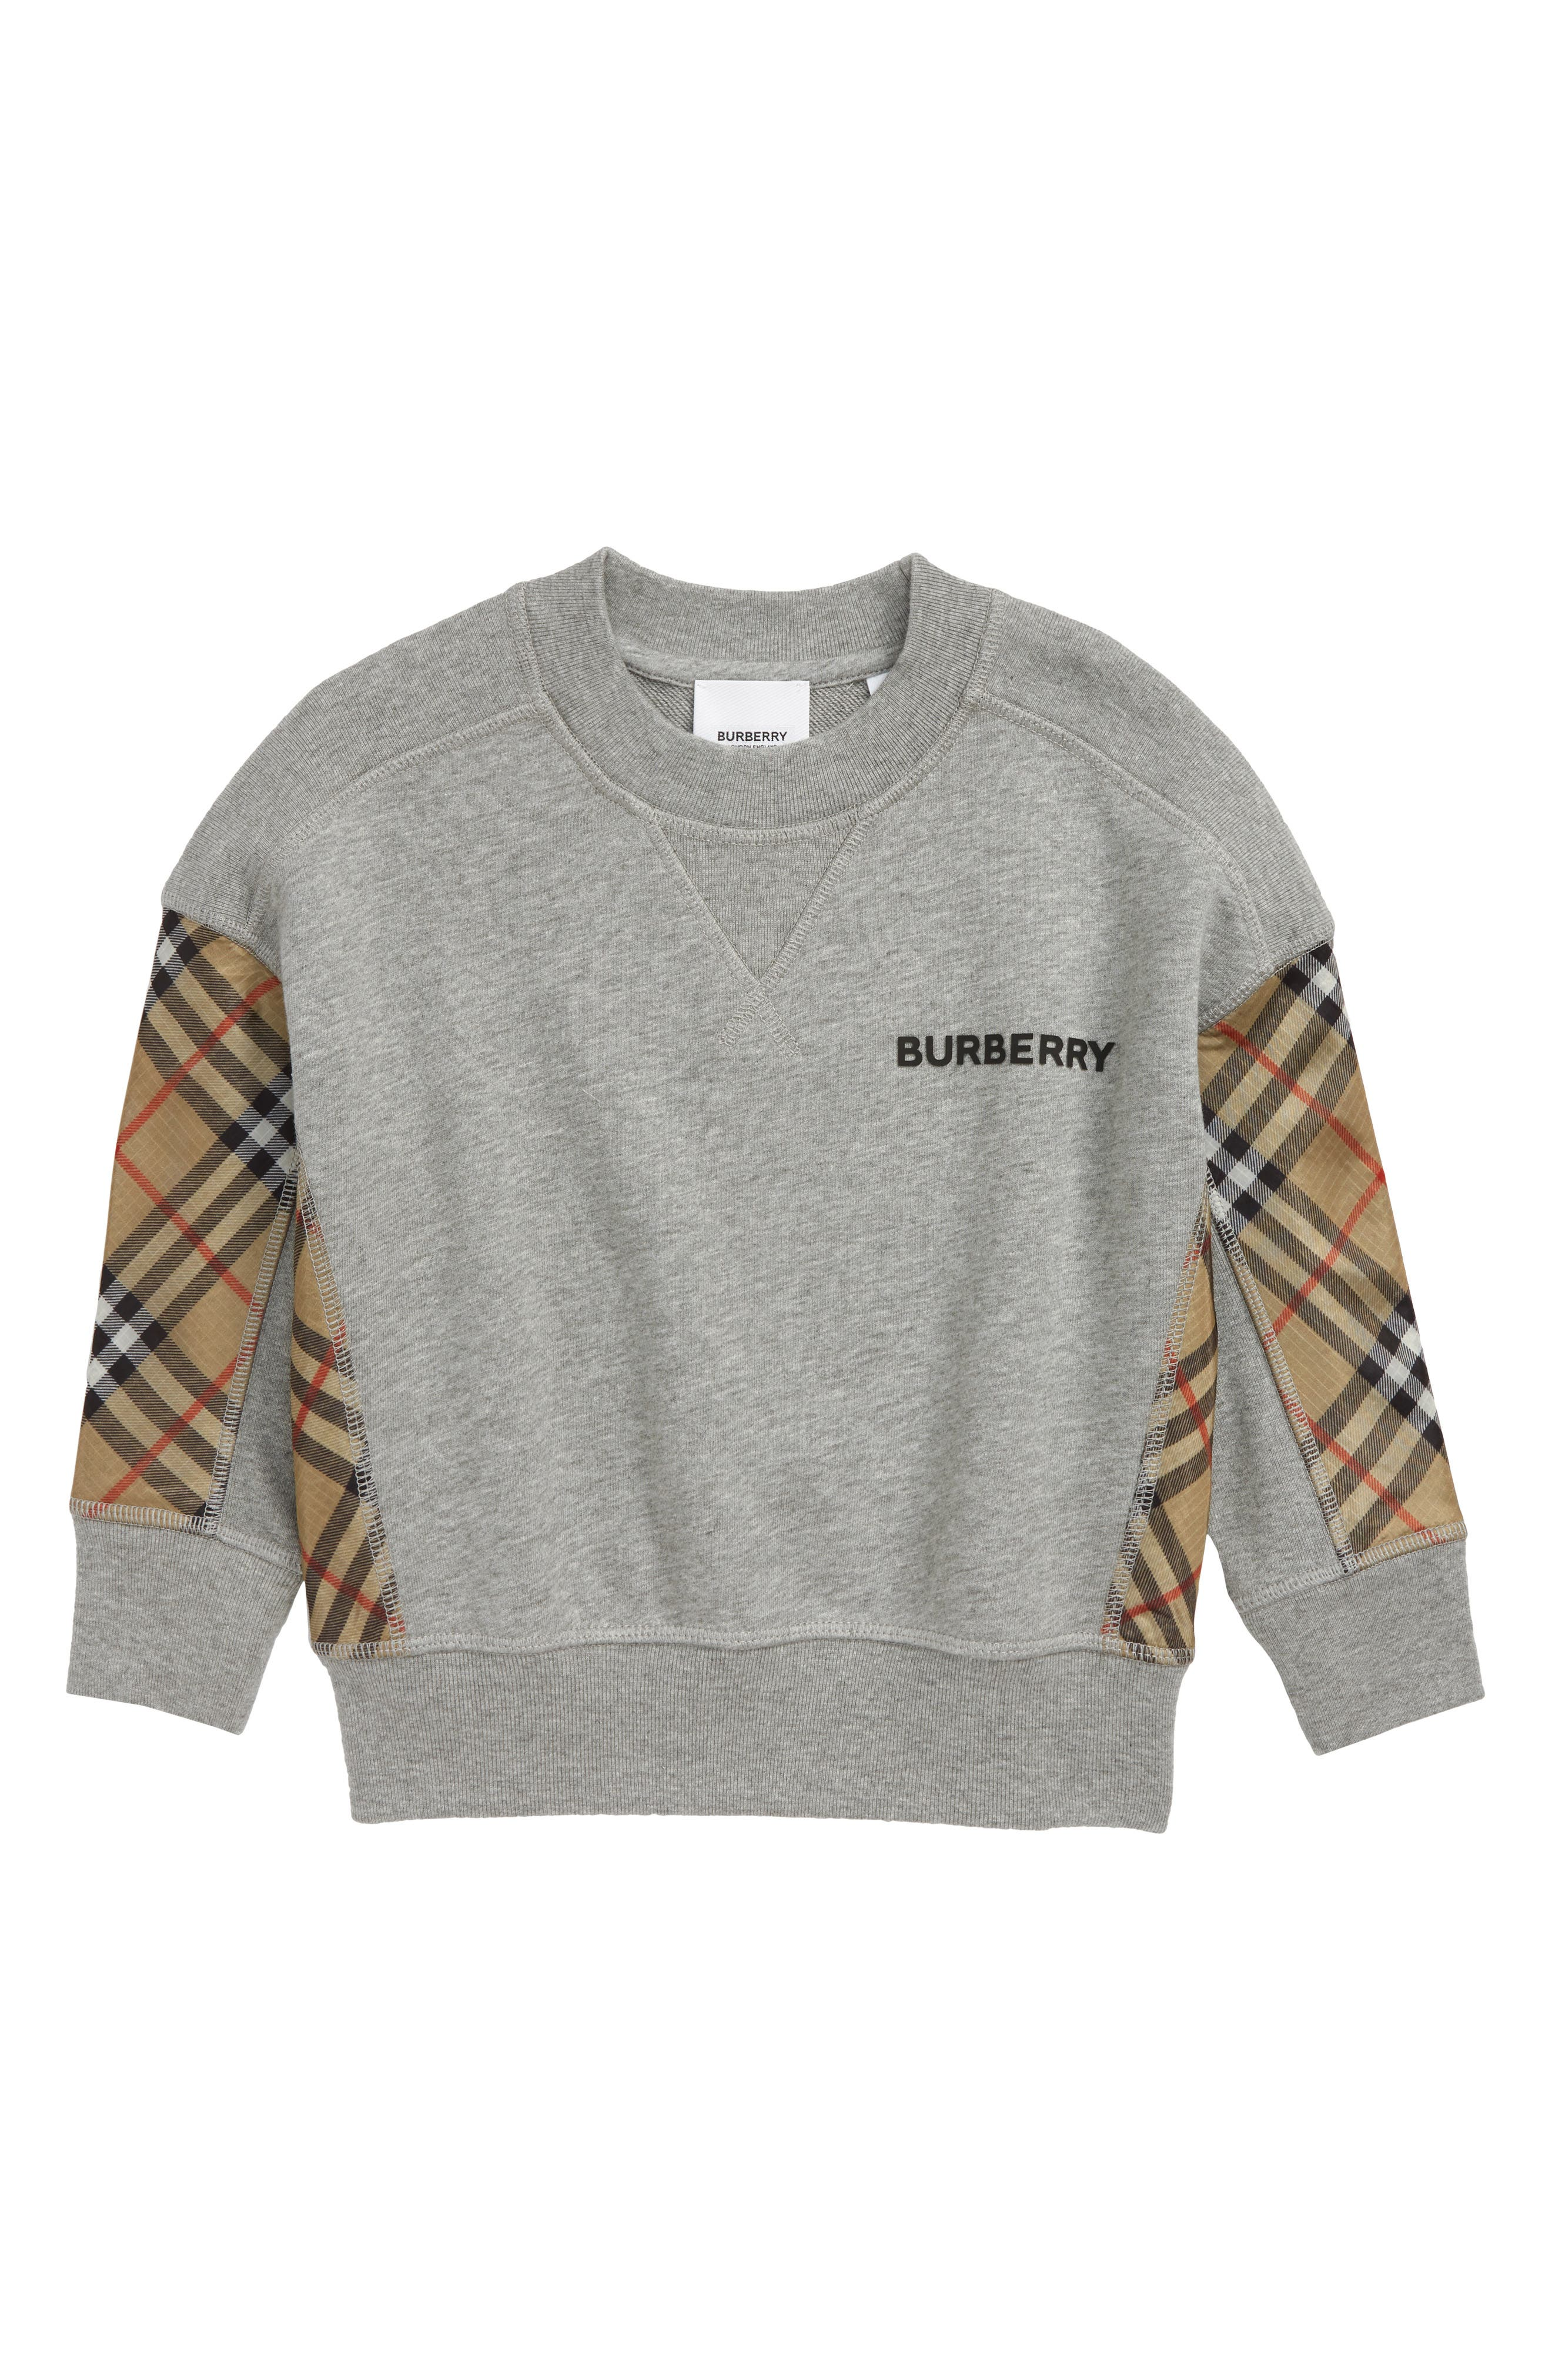 Boys Burberry Hamilton Sweatshirt Size 14Y  Grey